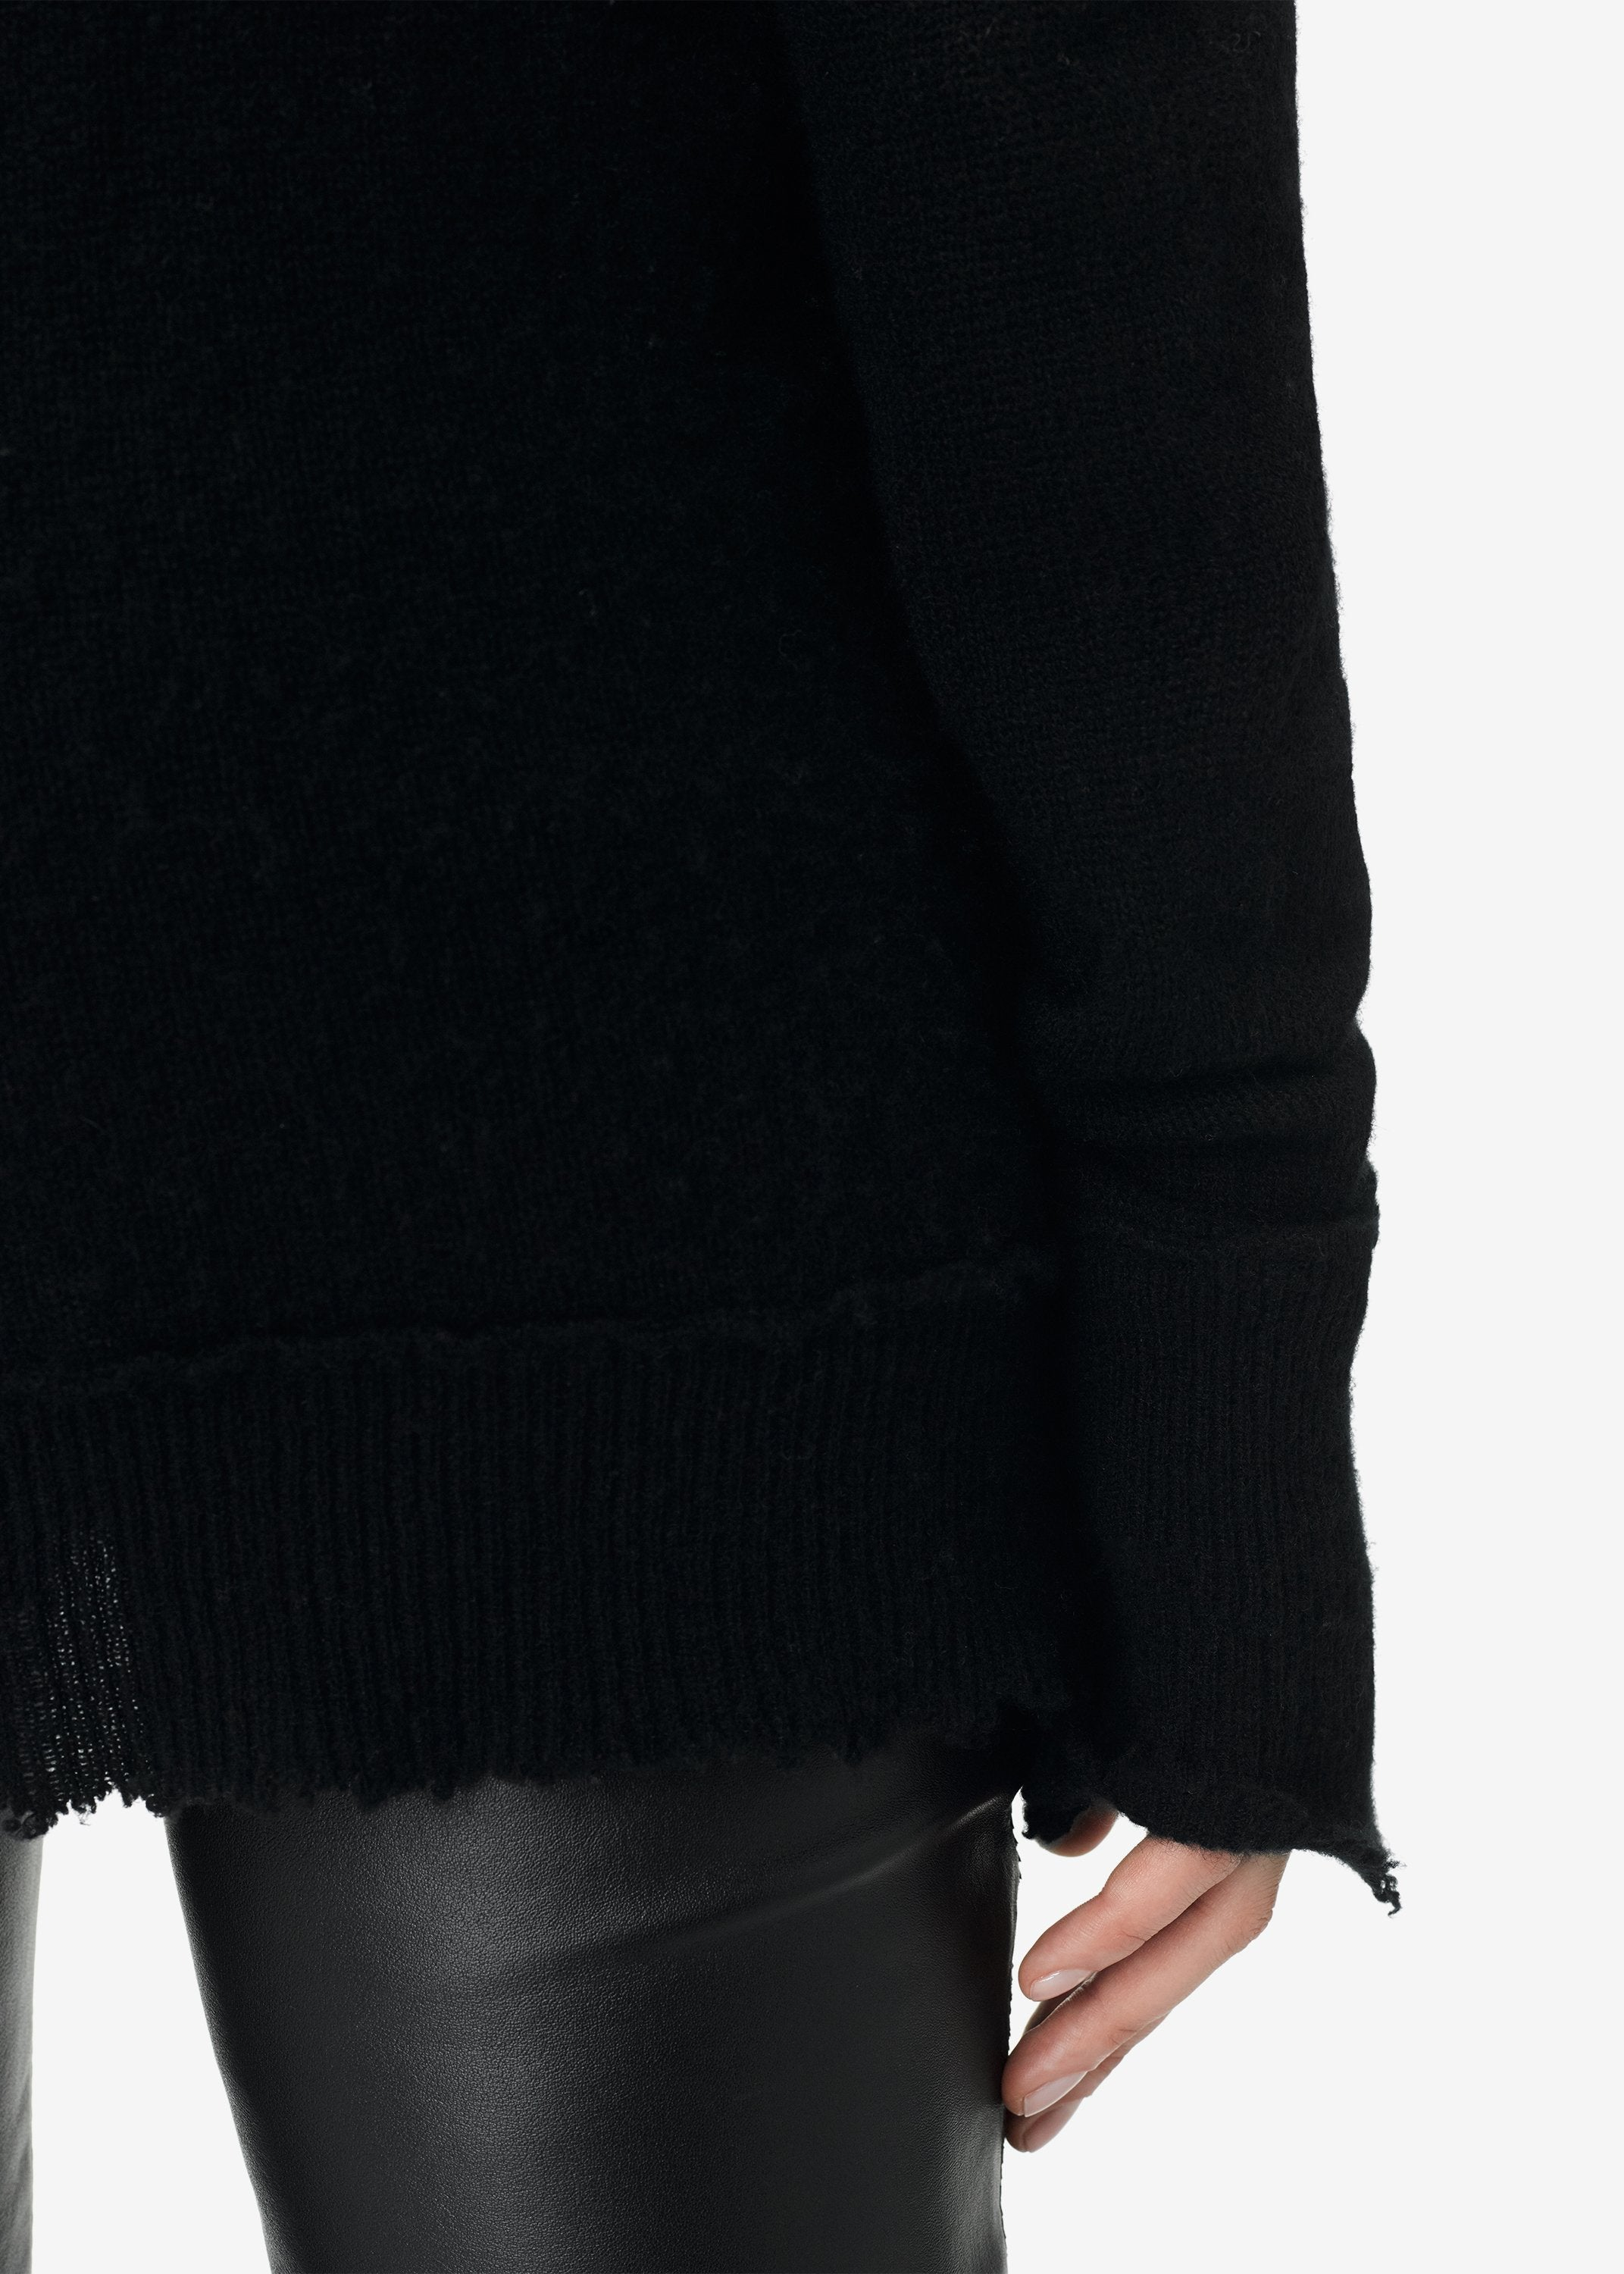 turtleneck-knit-black-image-6